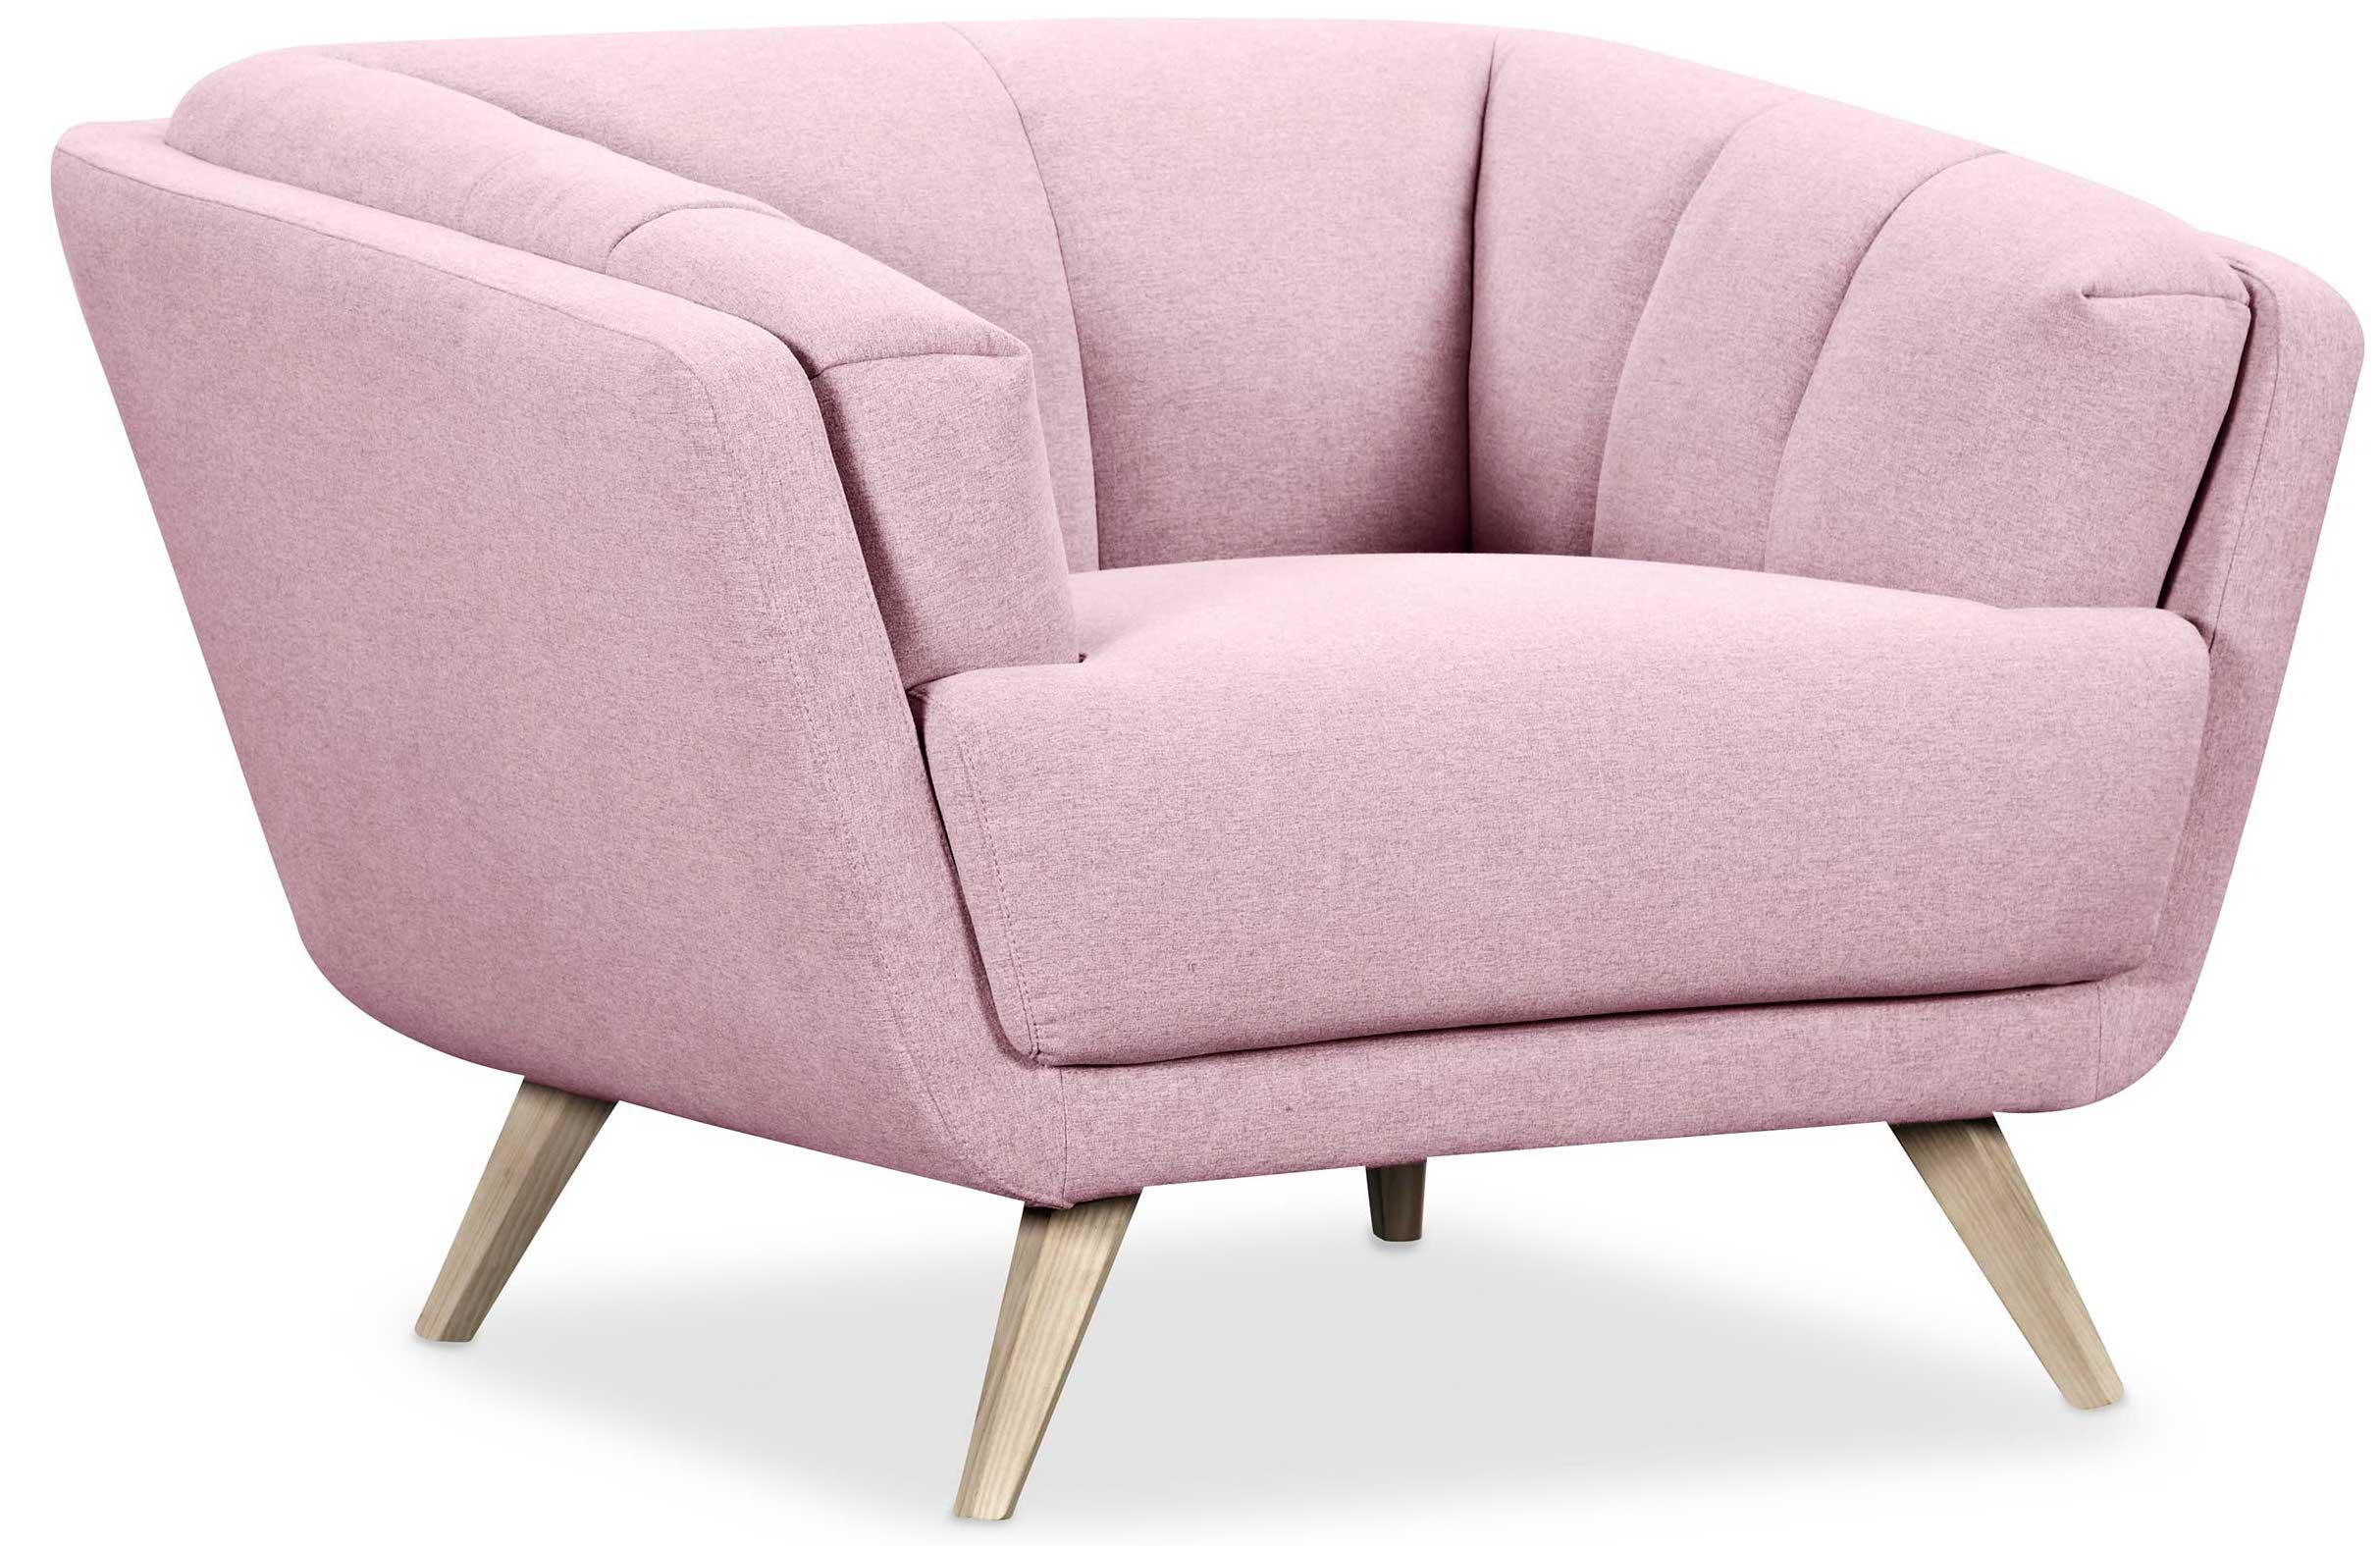 fauteuil crapaud rose pastel awesome meuble nordique fauteuil crapaud tissu rose cm pastel with. Black Bedroom Furniture Sets. Home Design Ideas